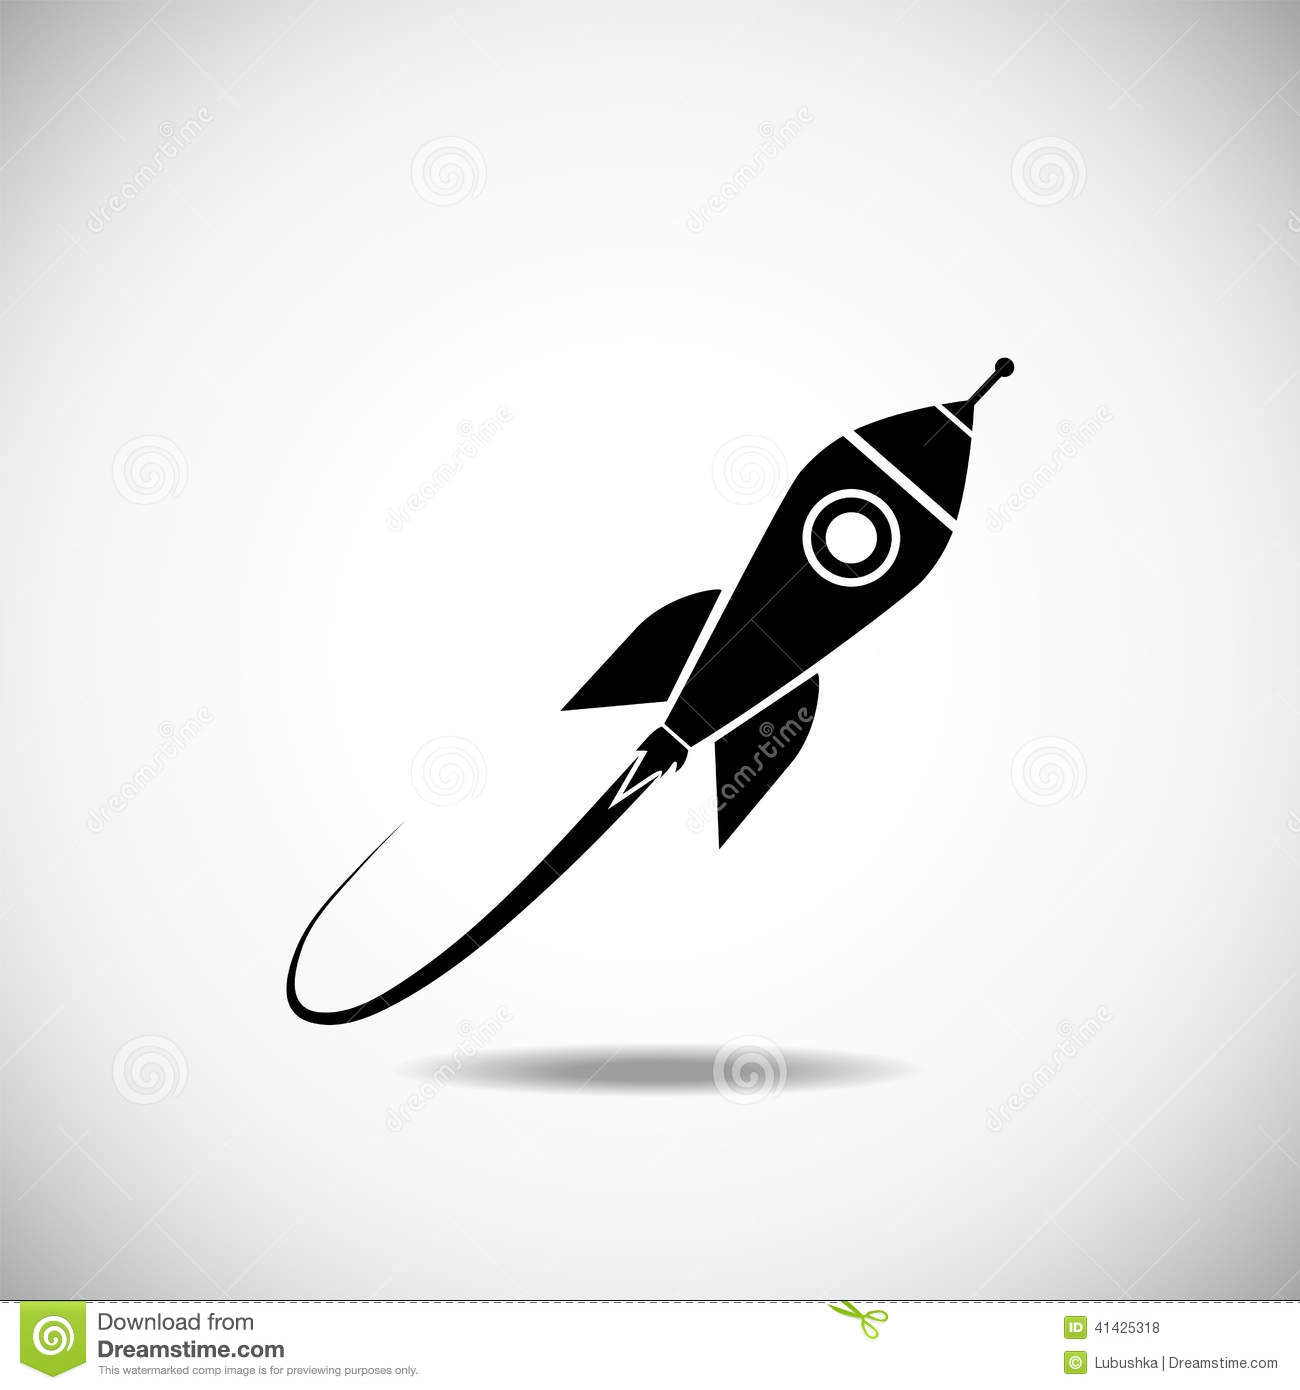 15 White Rocket Icon No Background Images